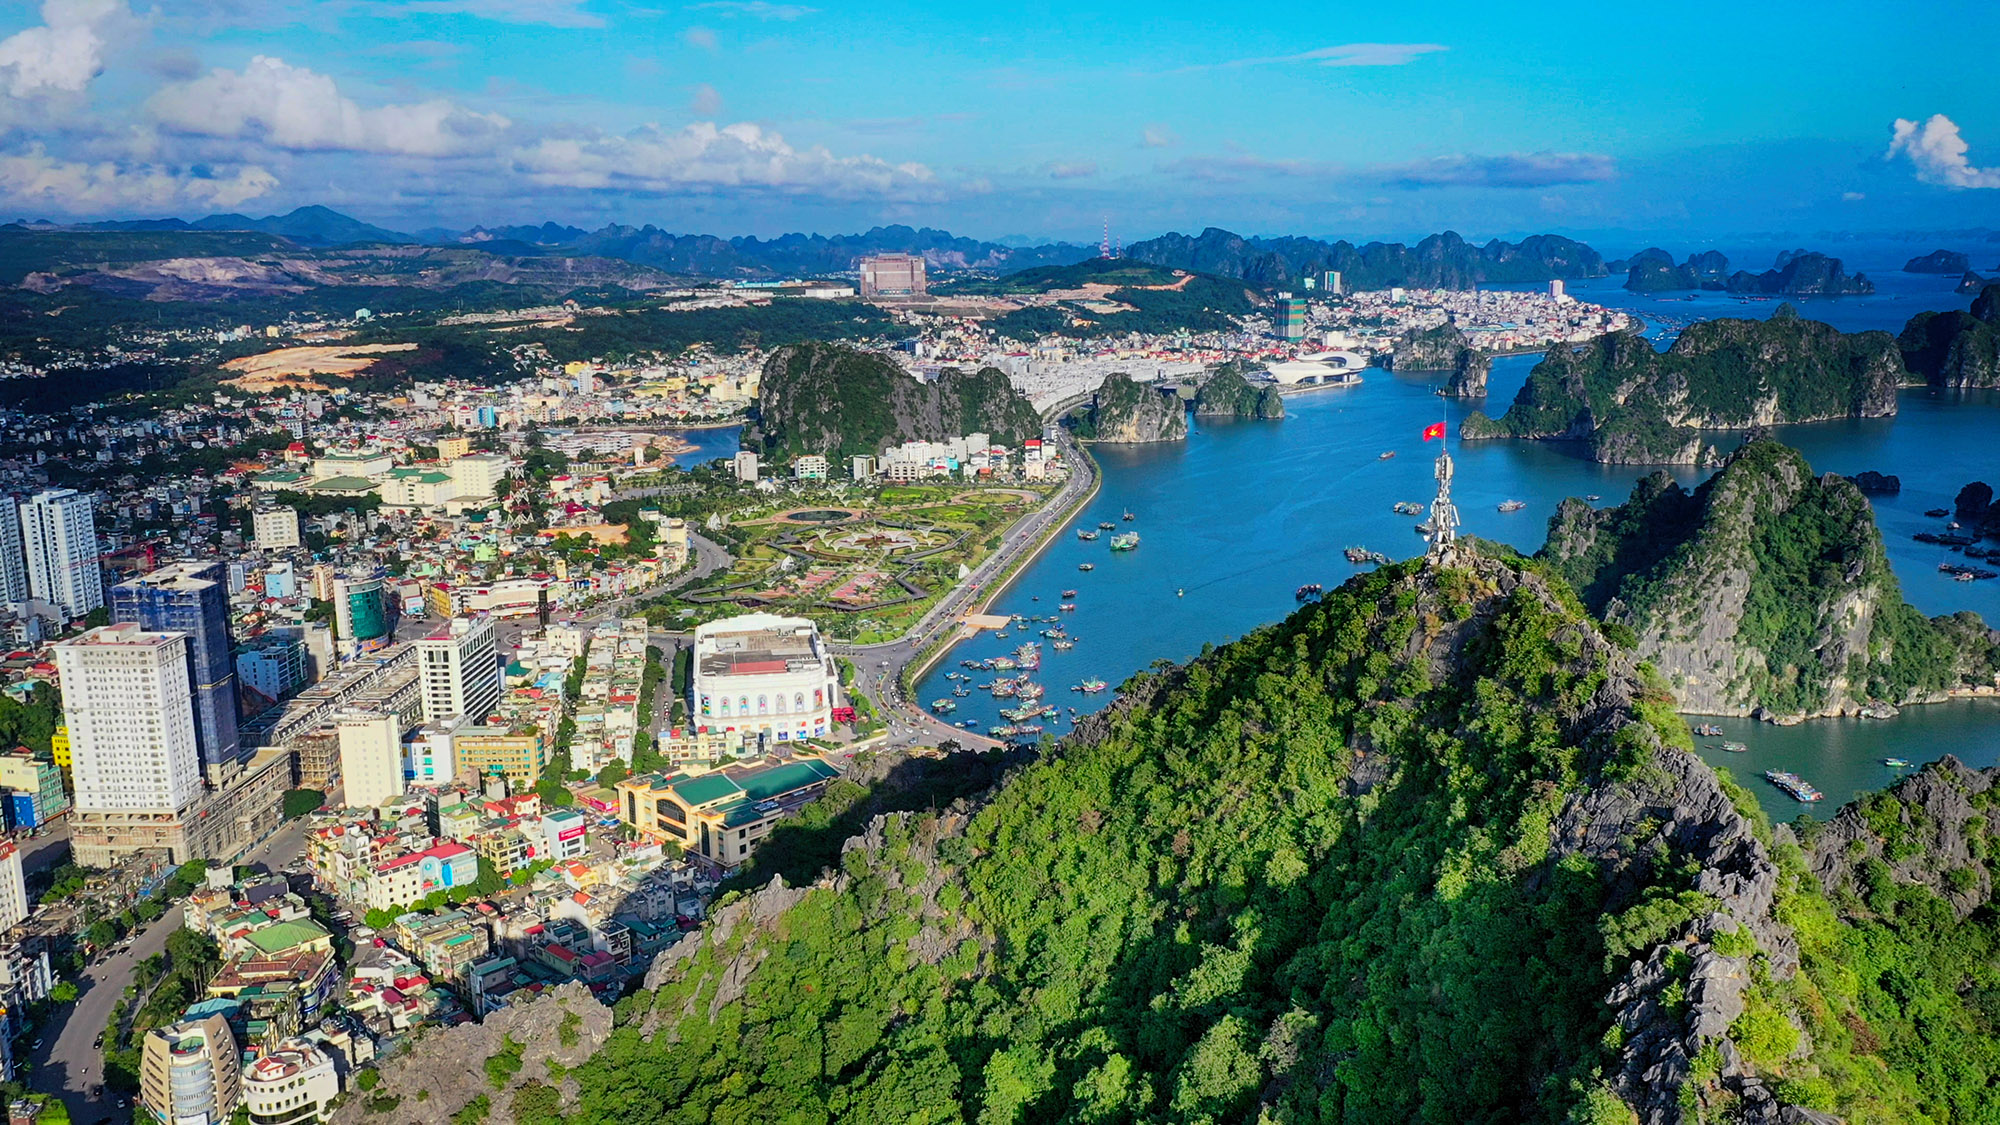 Views of Quang Ninh